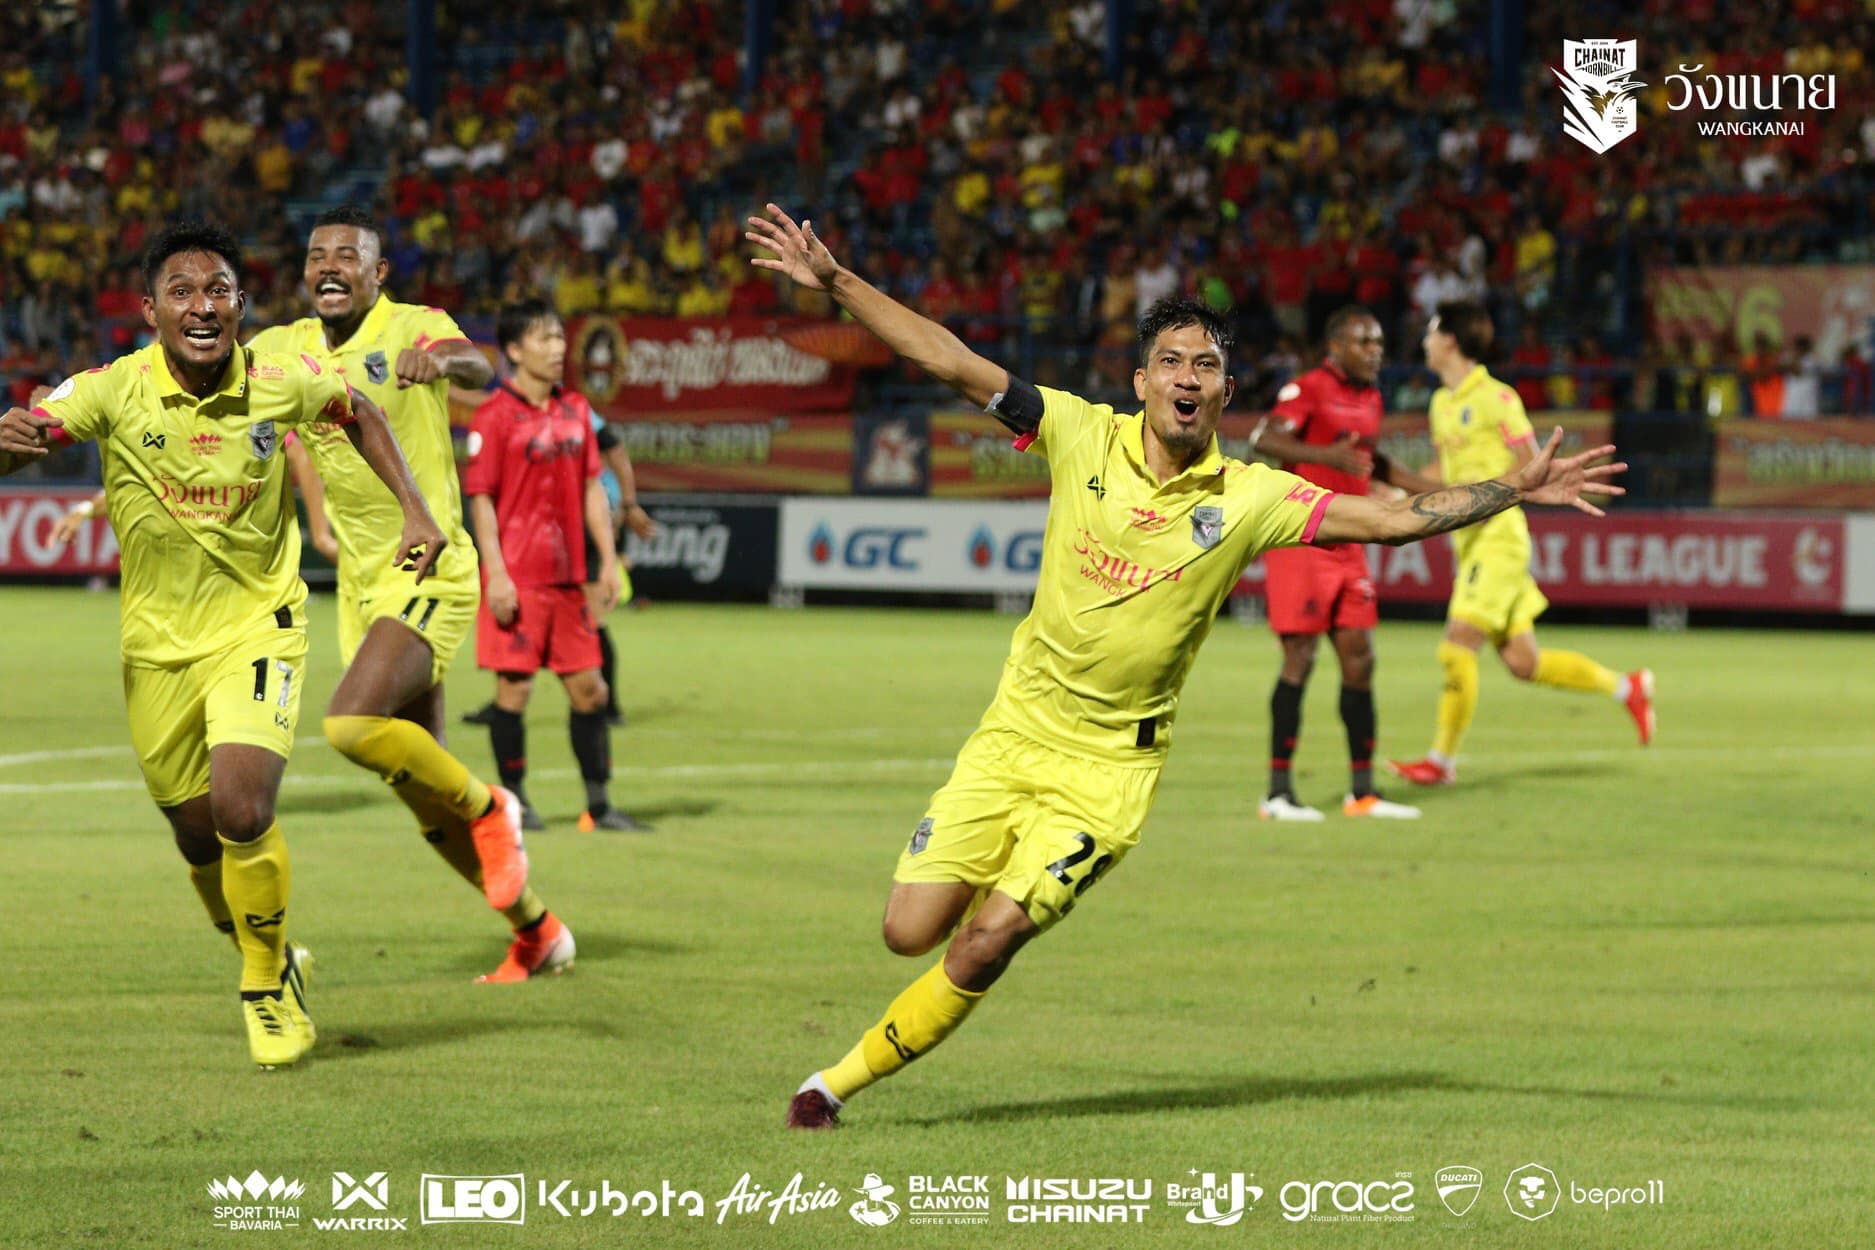 Chainat Out of Relegation Zone With Remarkable Away Win